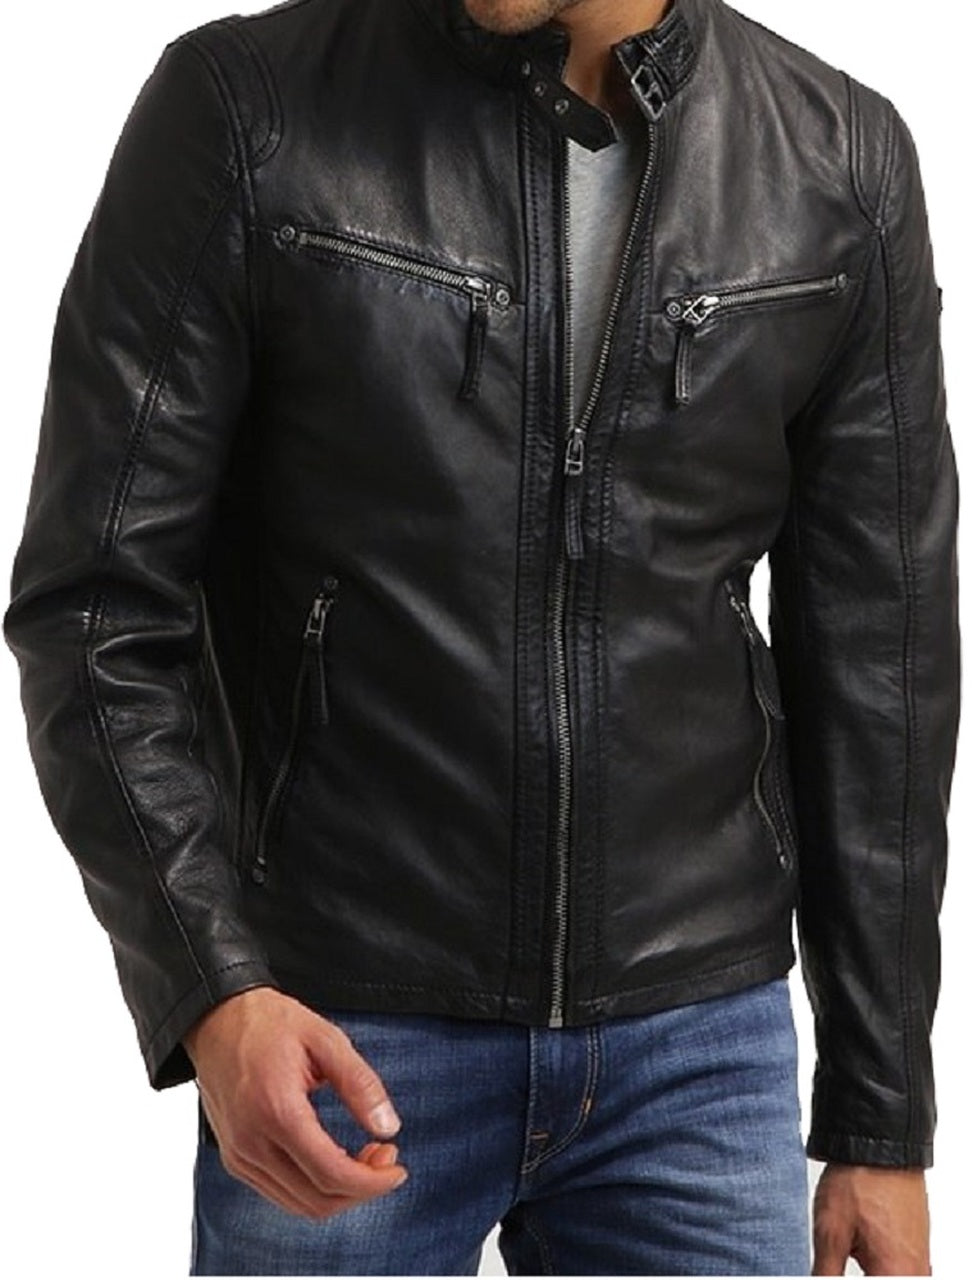 Men's Designer Biker Style Classic Black Color Genuine Leather Jacket